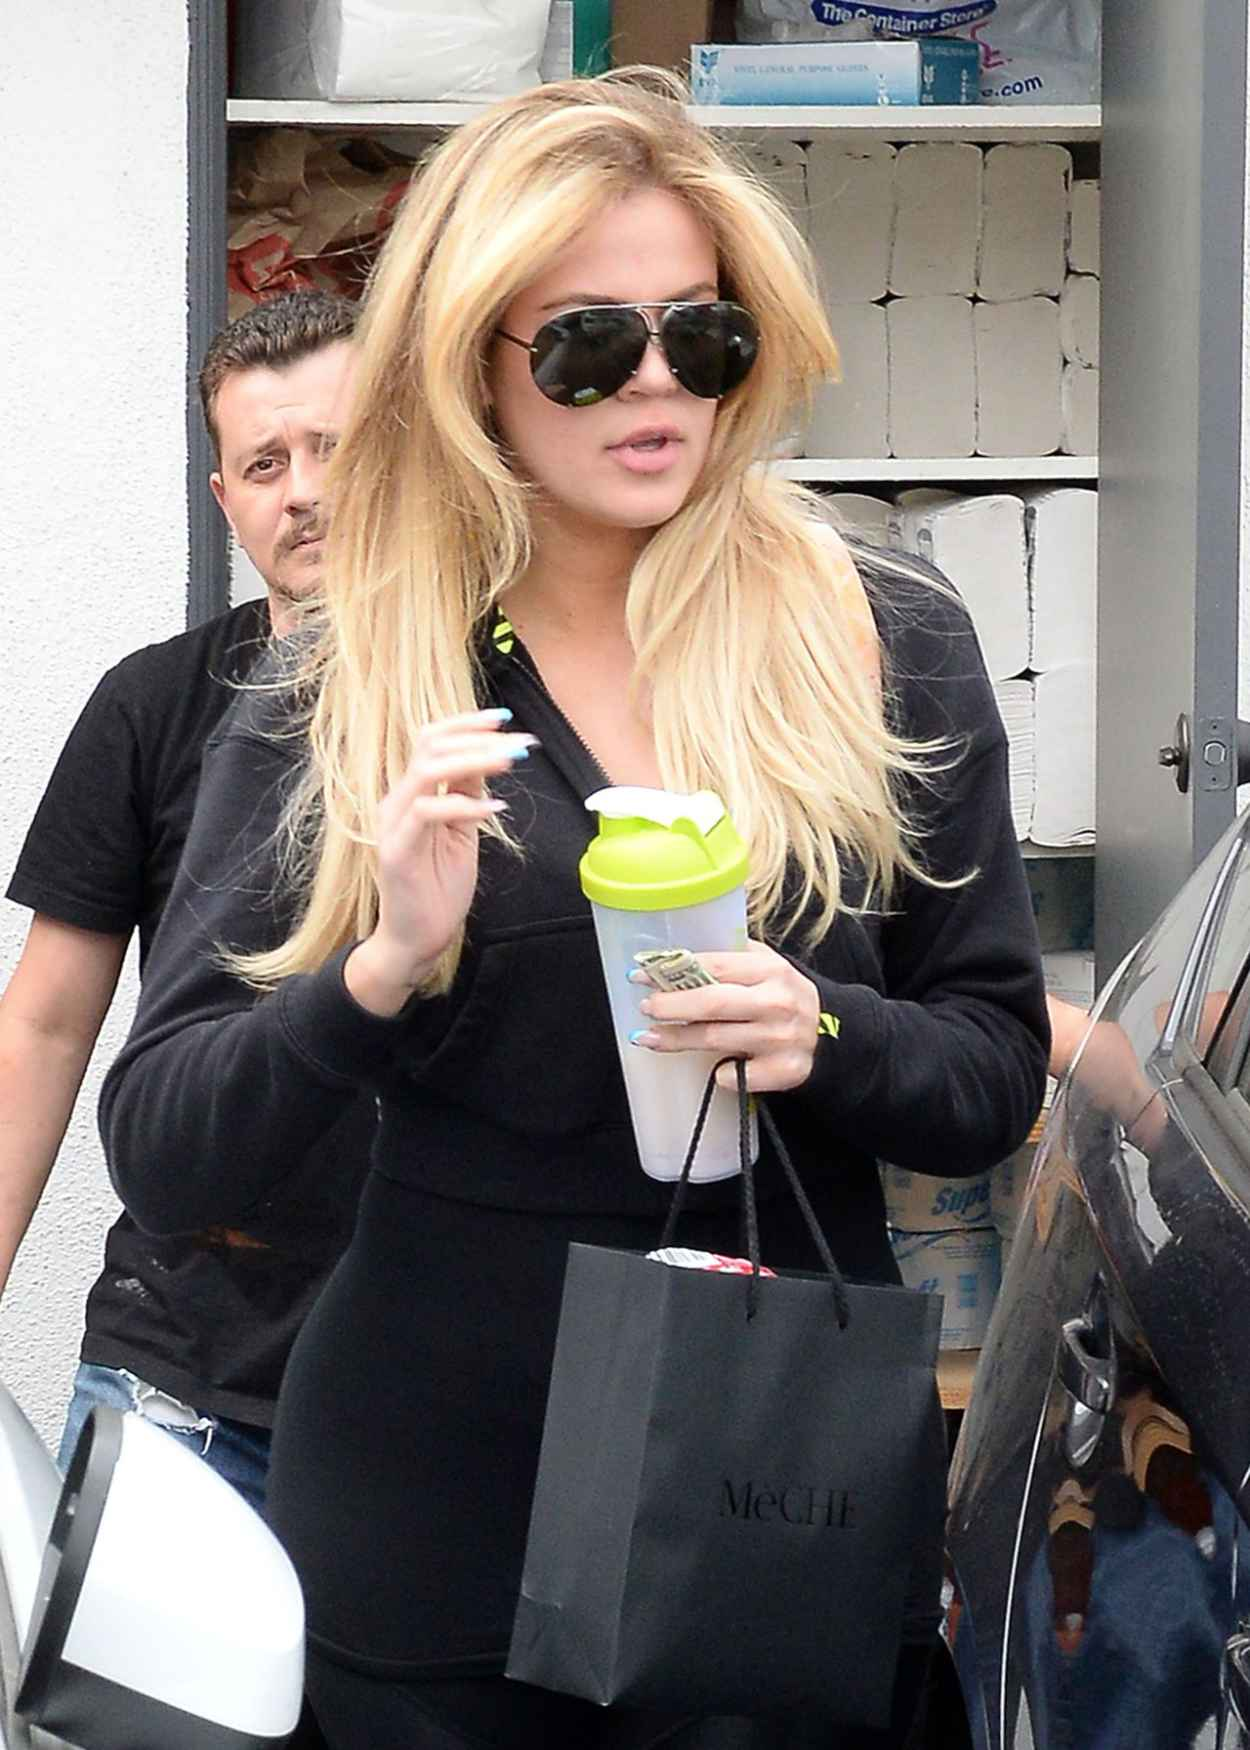 Khloe Kardashian - Leaving a Hair Salon After Getting Her Hair Done in Beverly Hills, June 2015-3